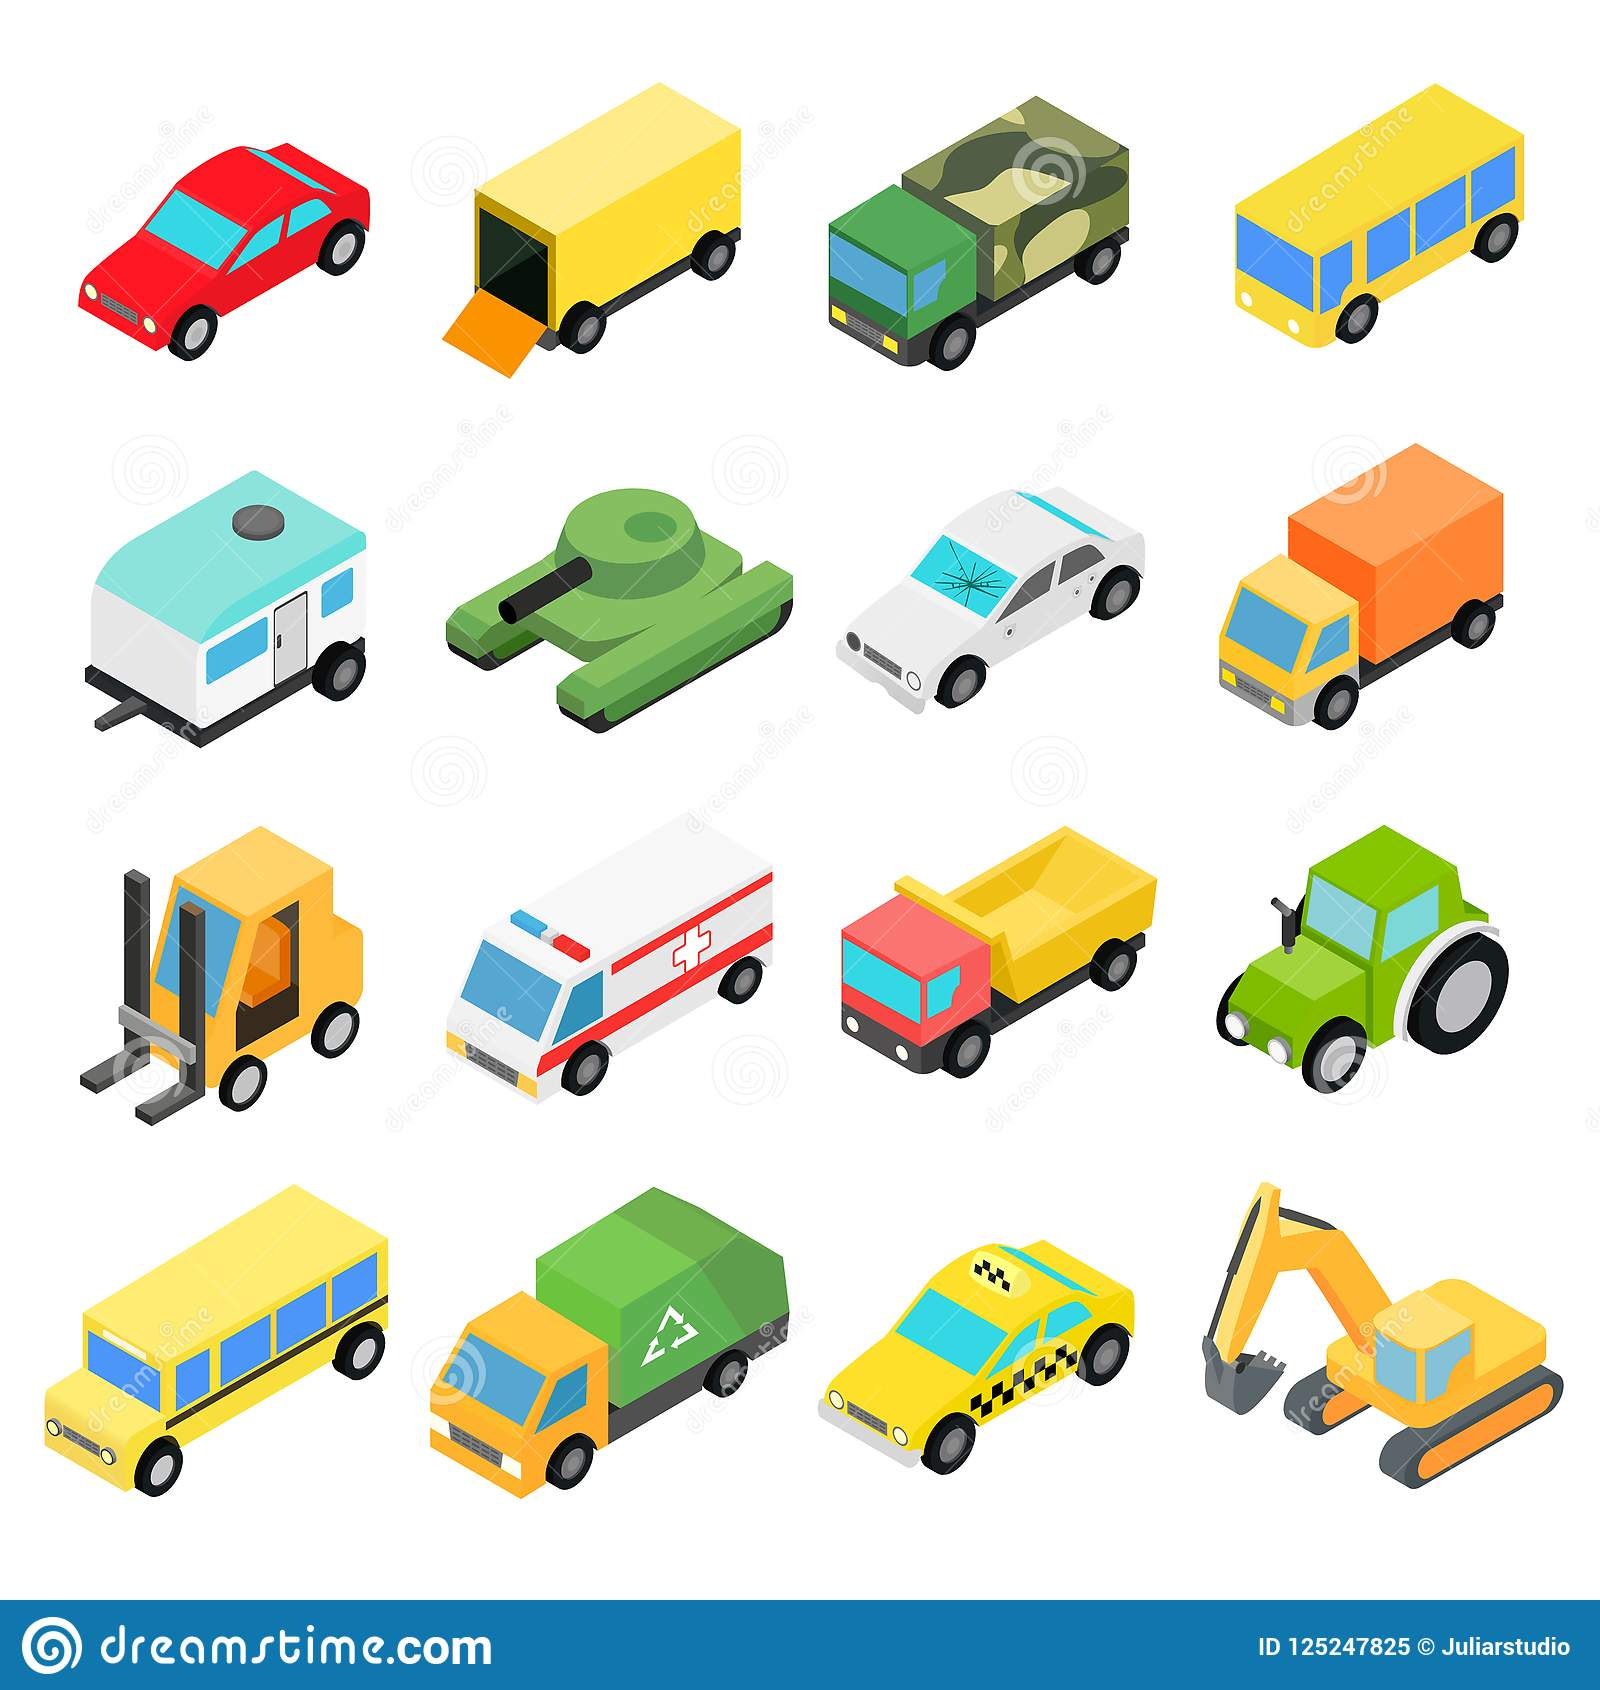 Types Automobiles Stock Illustrations 56 Types Automobiles Stock Illustrations Vectors Clipart Dreamstime